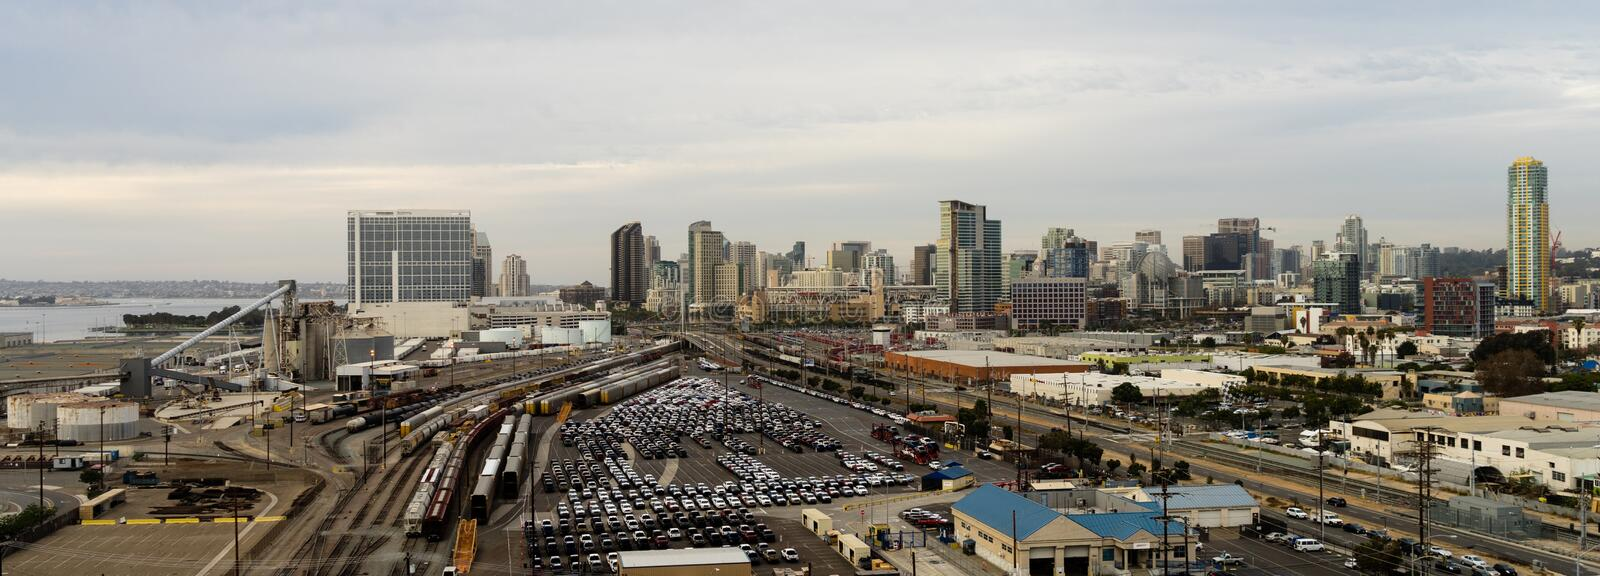 Railroad Yard Depot San Diego Waterfront Downtown City Skyline. View from the south end of the buildings and infrastructure buildings of San Diego at dusk stock photography